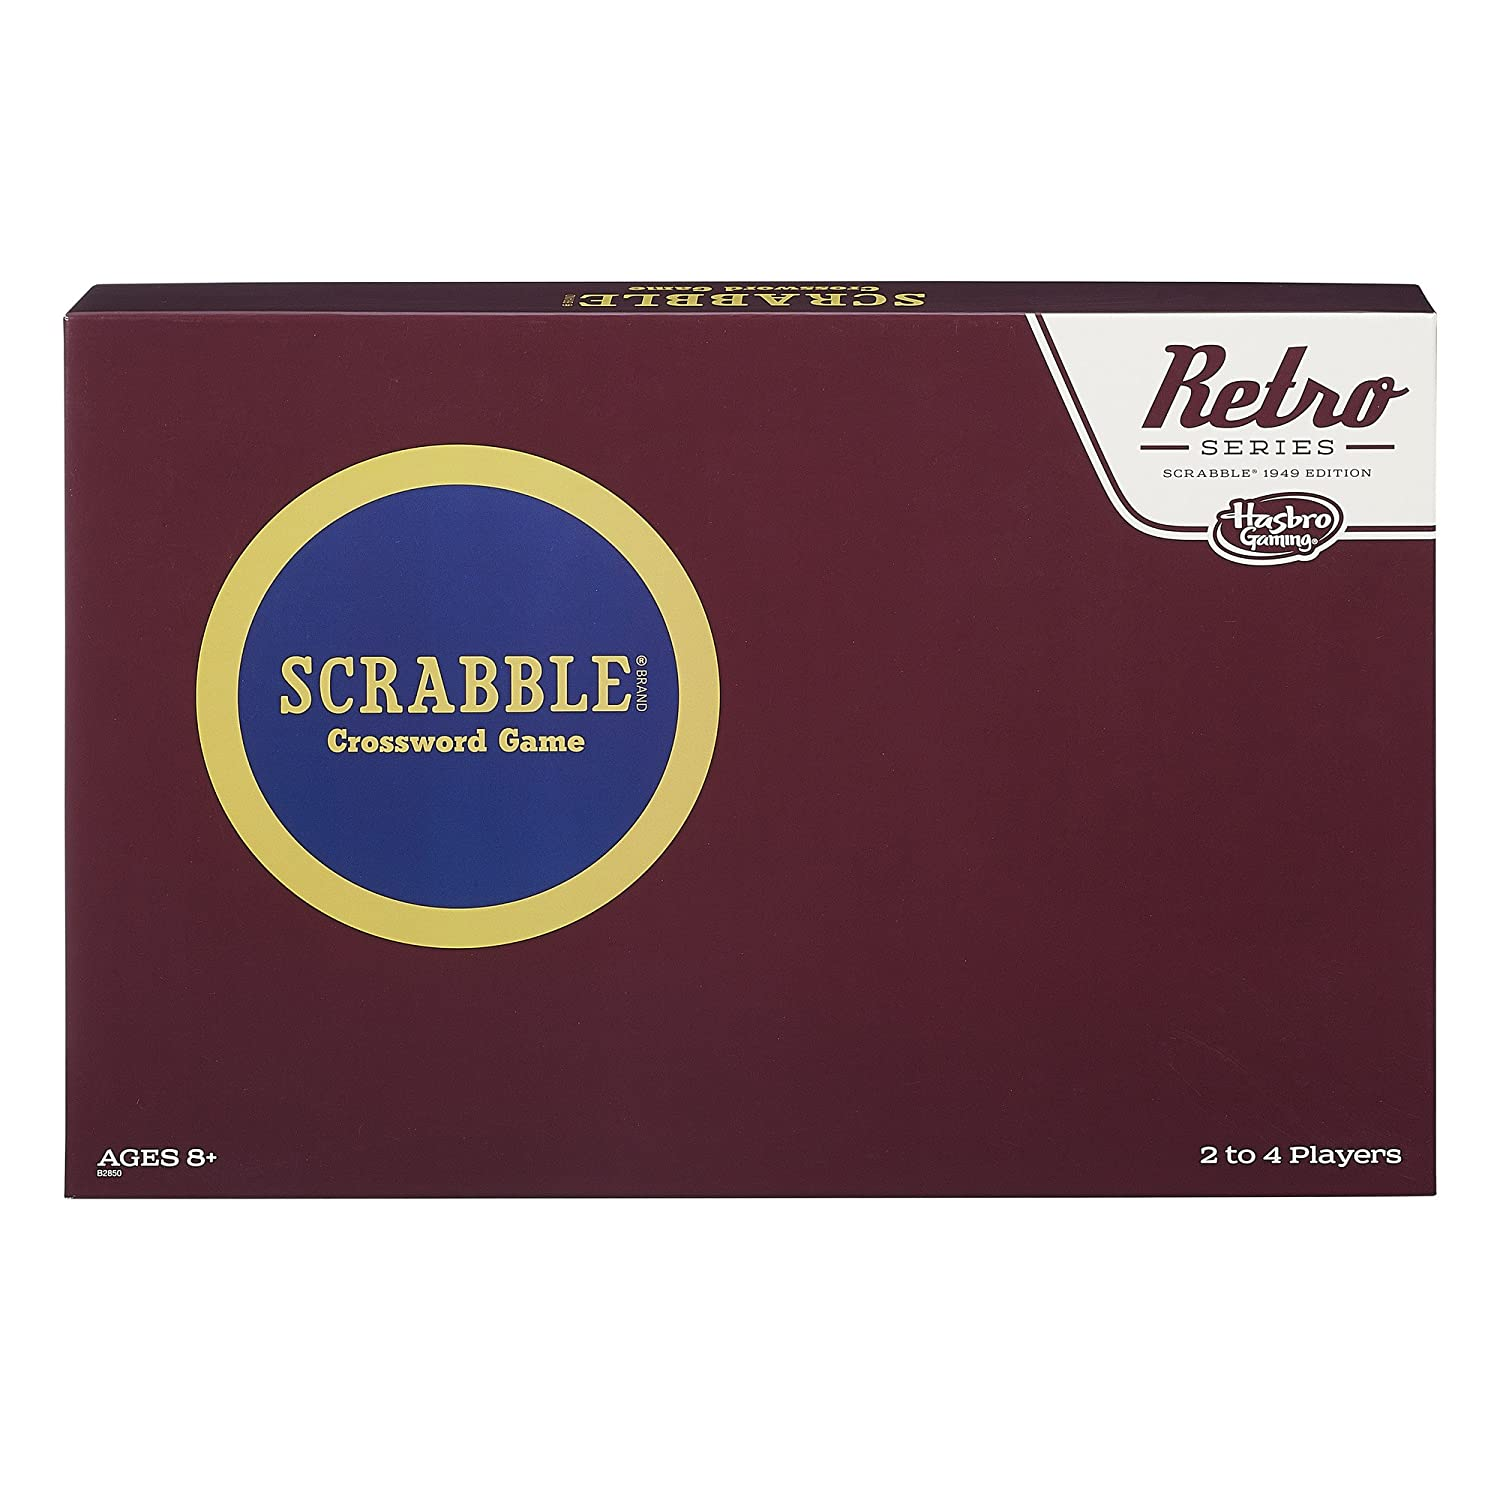 Retro Series Scrabble 1949 Edition Game Hasbro B2850